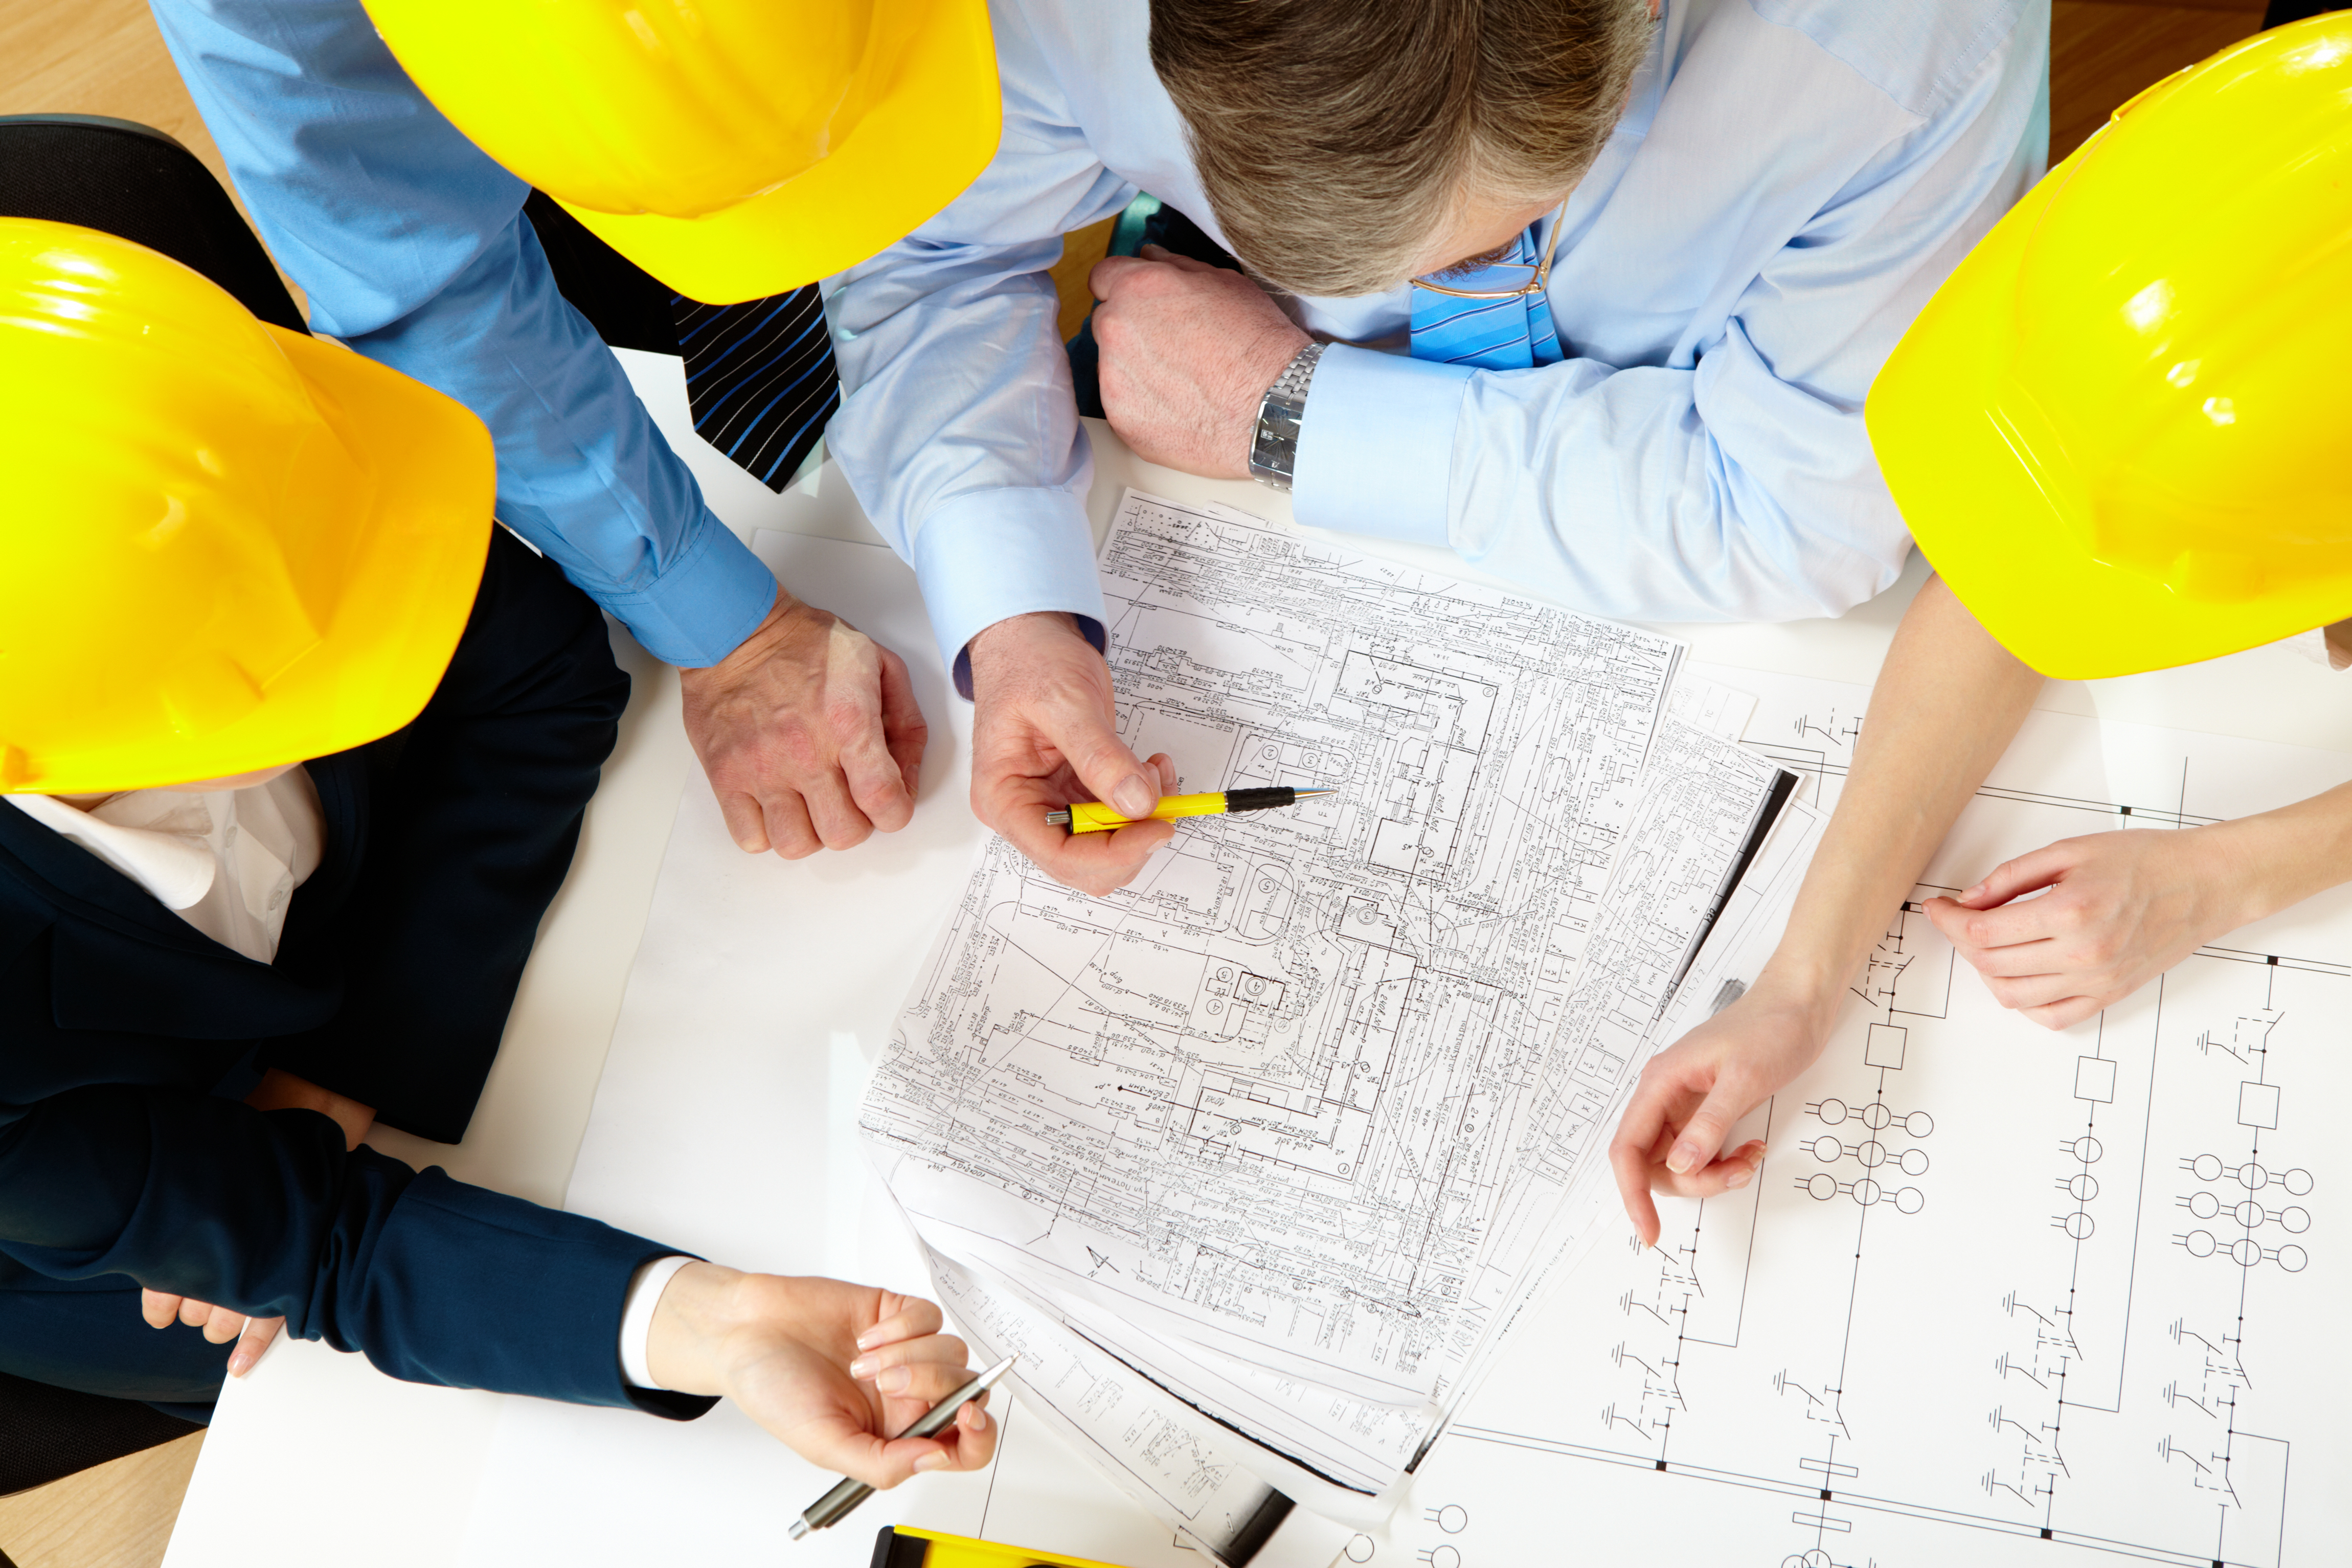 Best Civil Engineerig Courses in Malaysia